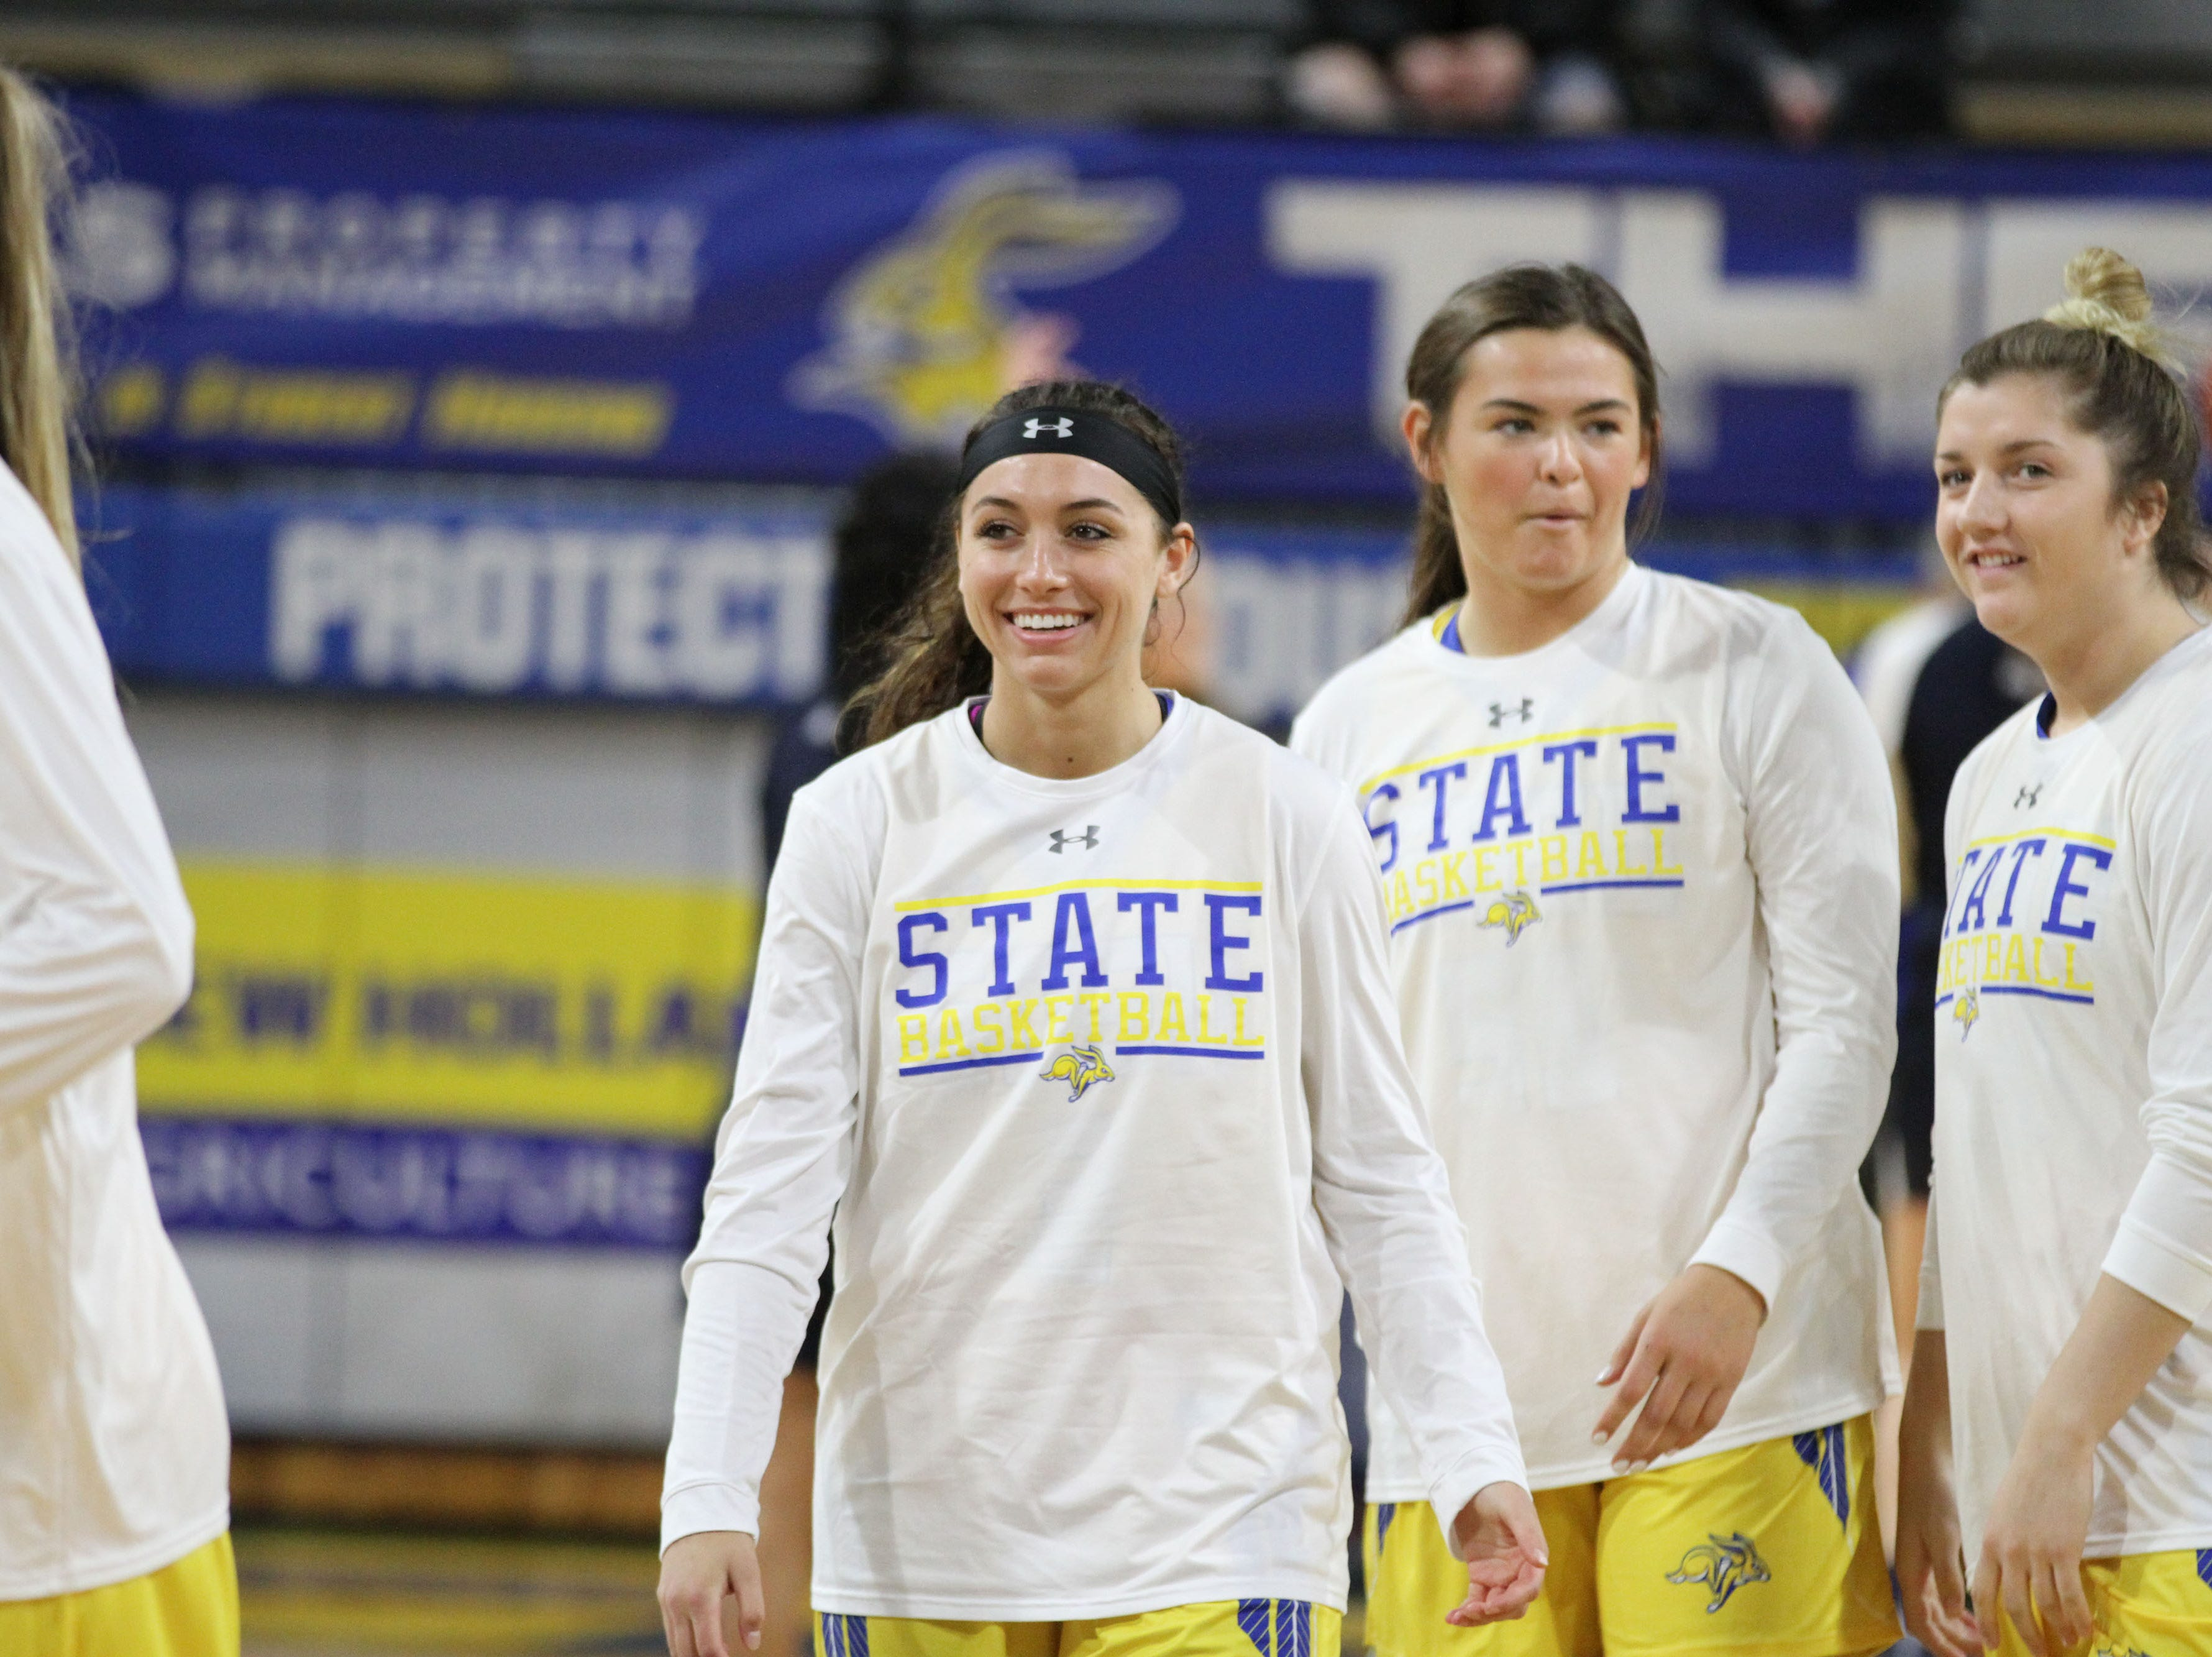 South Dakota State's Rylie Casio Jensen (middle) gives a smile before the matchup against Oral Roberts Saturday afternoon at Frost Arena in Brookings.